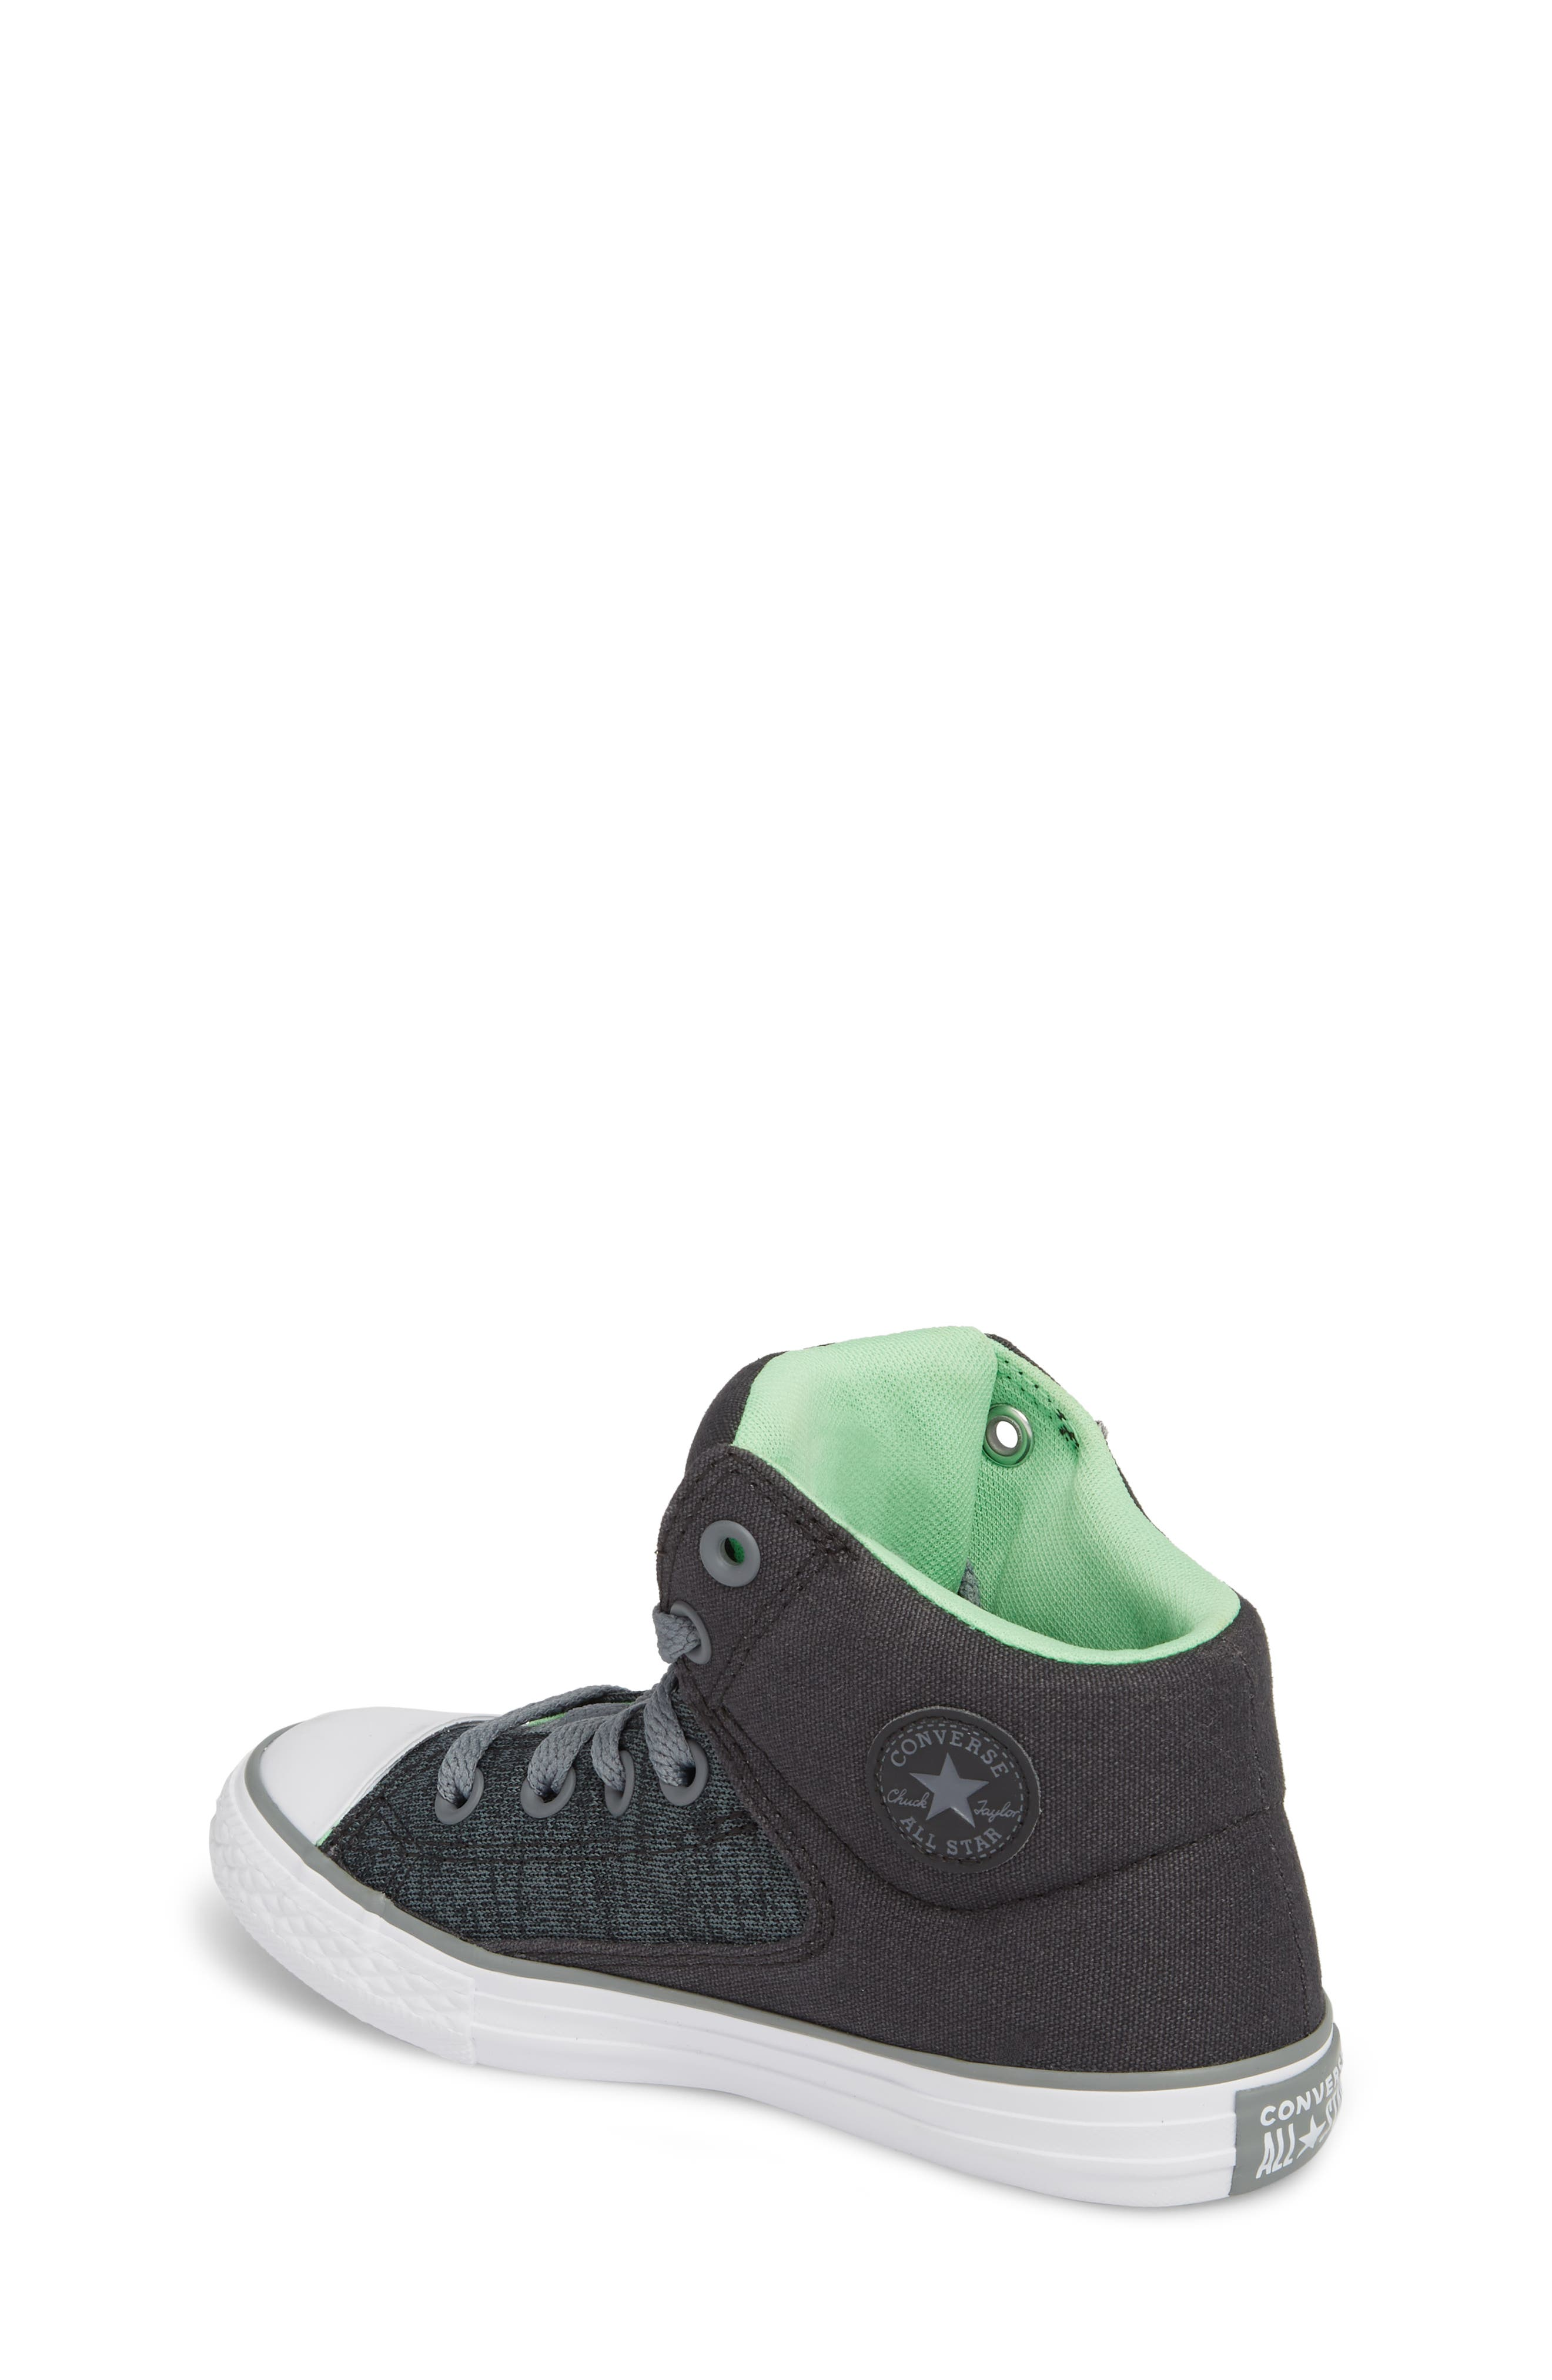 Chuck Taylor<sup>®</sup> All Star<sup>®</sup> High Street High Top Sneaker,                             Alternate thumbnail 2, color,                             012